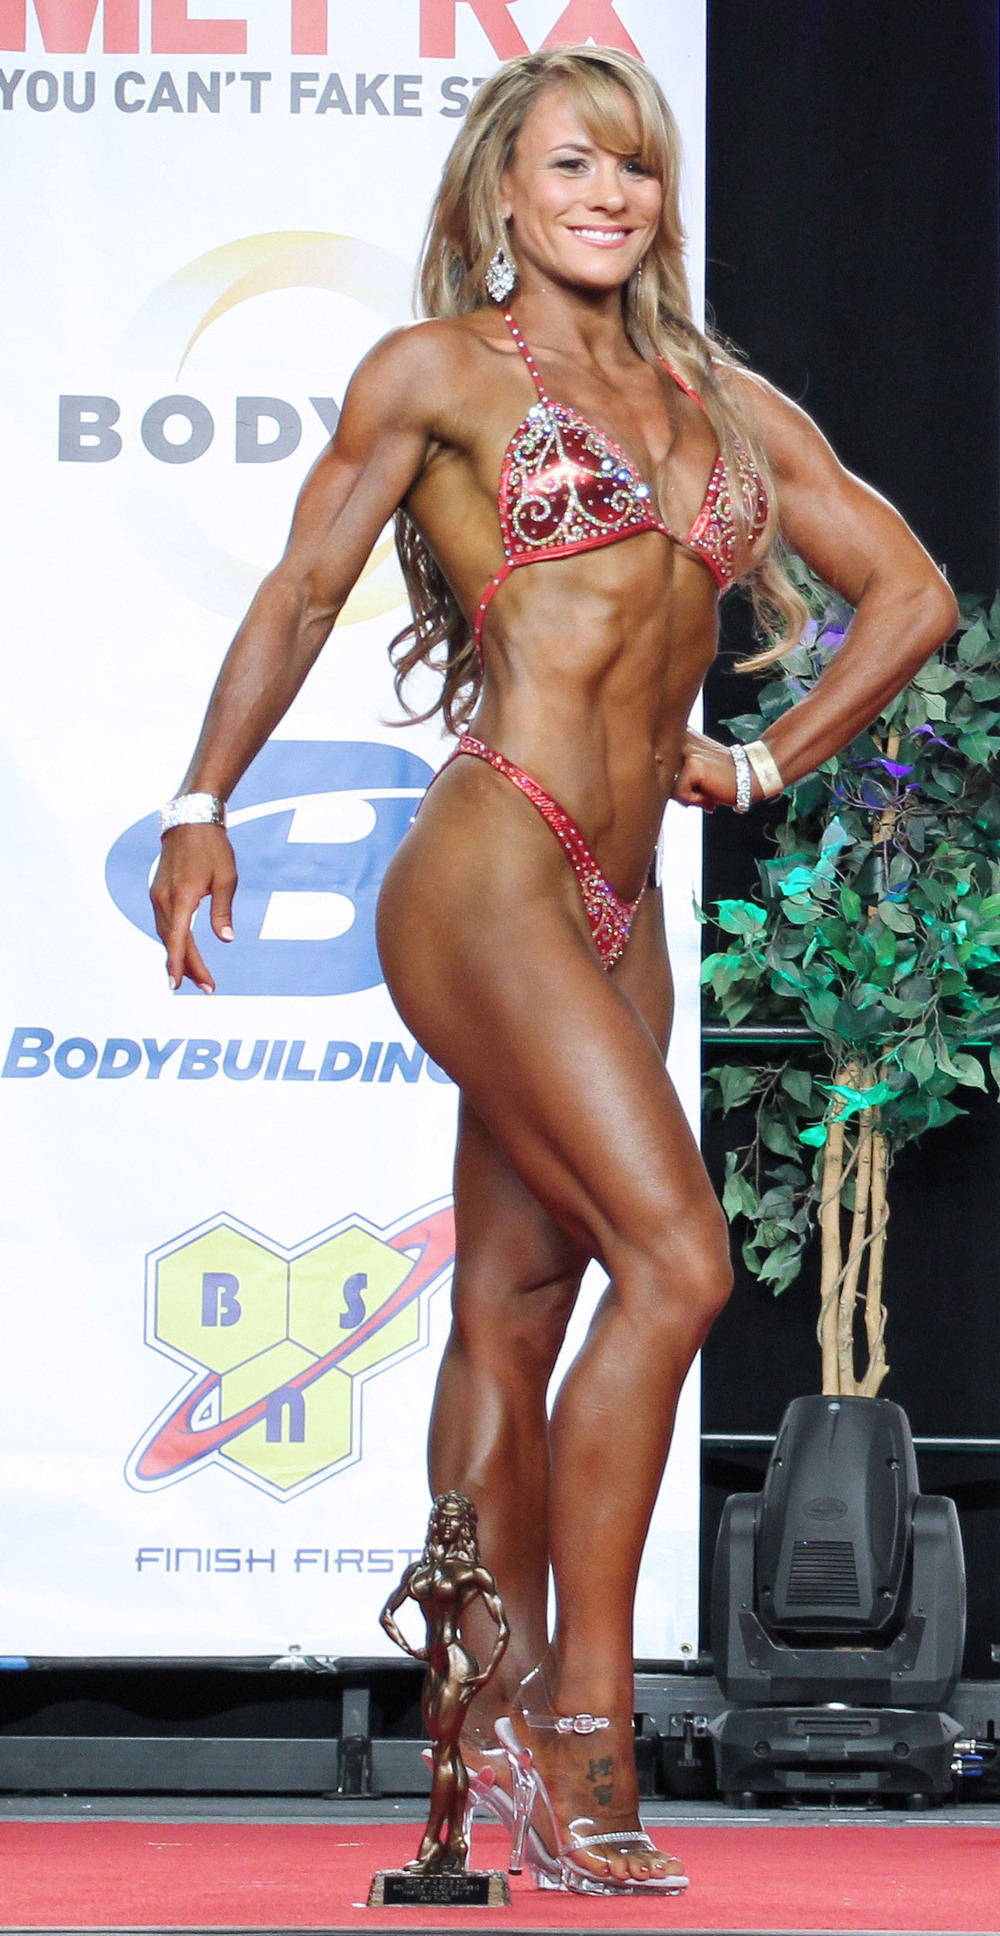 Sophia Drysdale, her diet for Ms Figure.